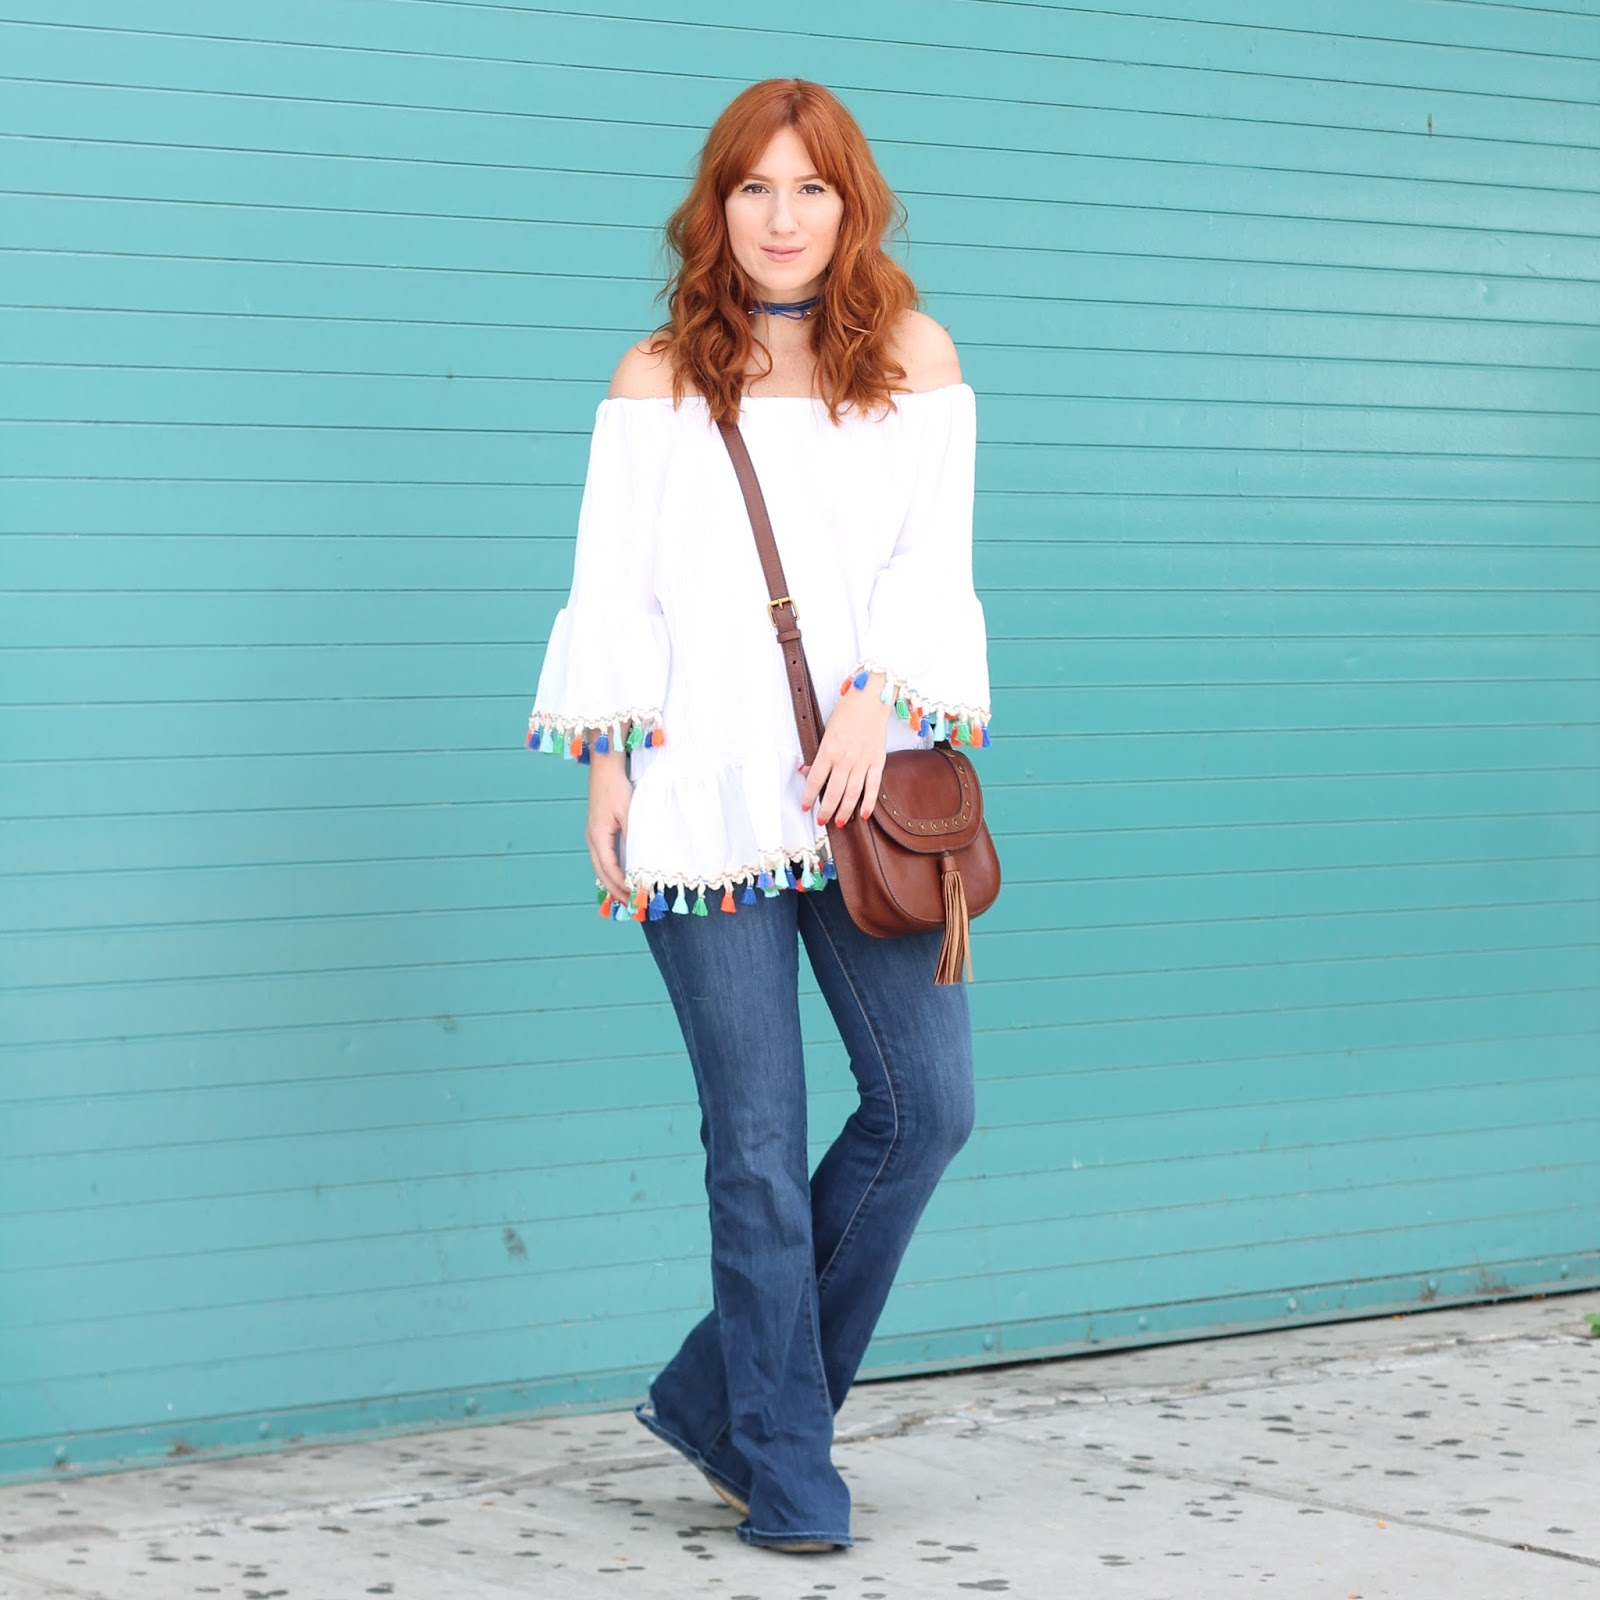 off the shoulder outfit ideas, tassels, bright colored tops, how to wear off the shoulder tops, how to wear flare jeans, outfit ideas, style, outfits